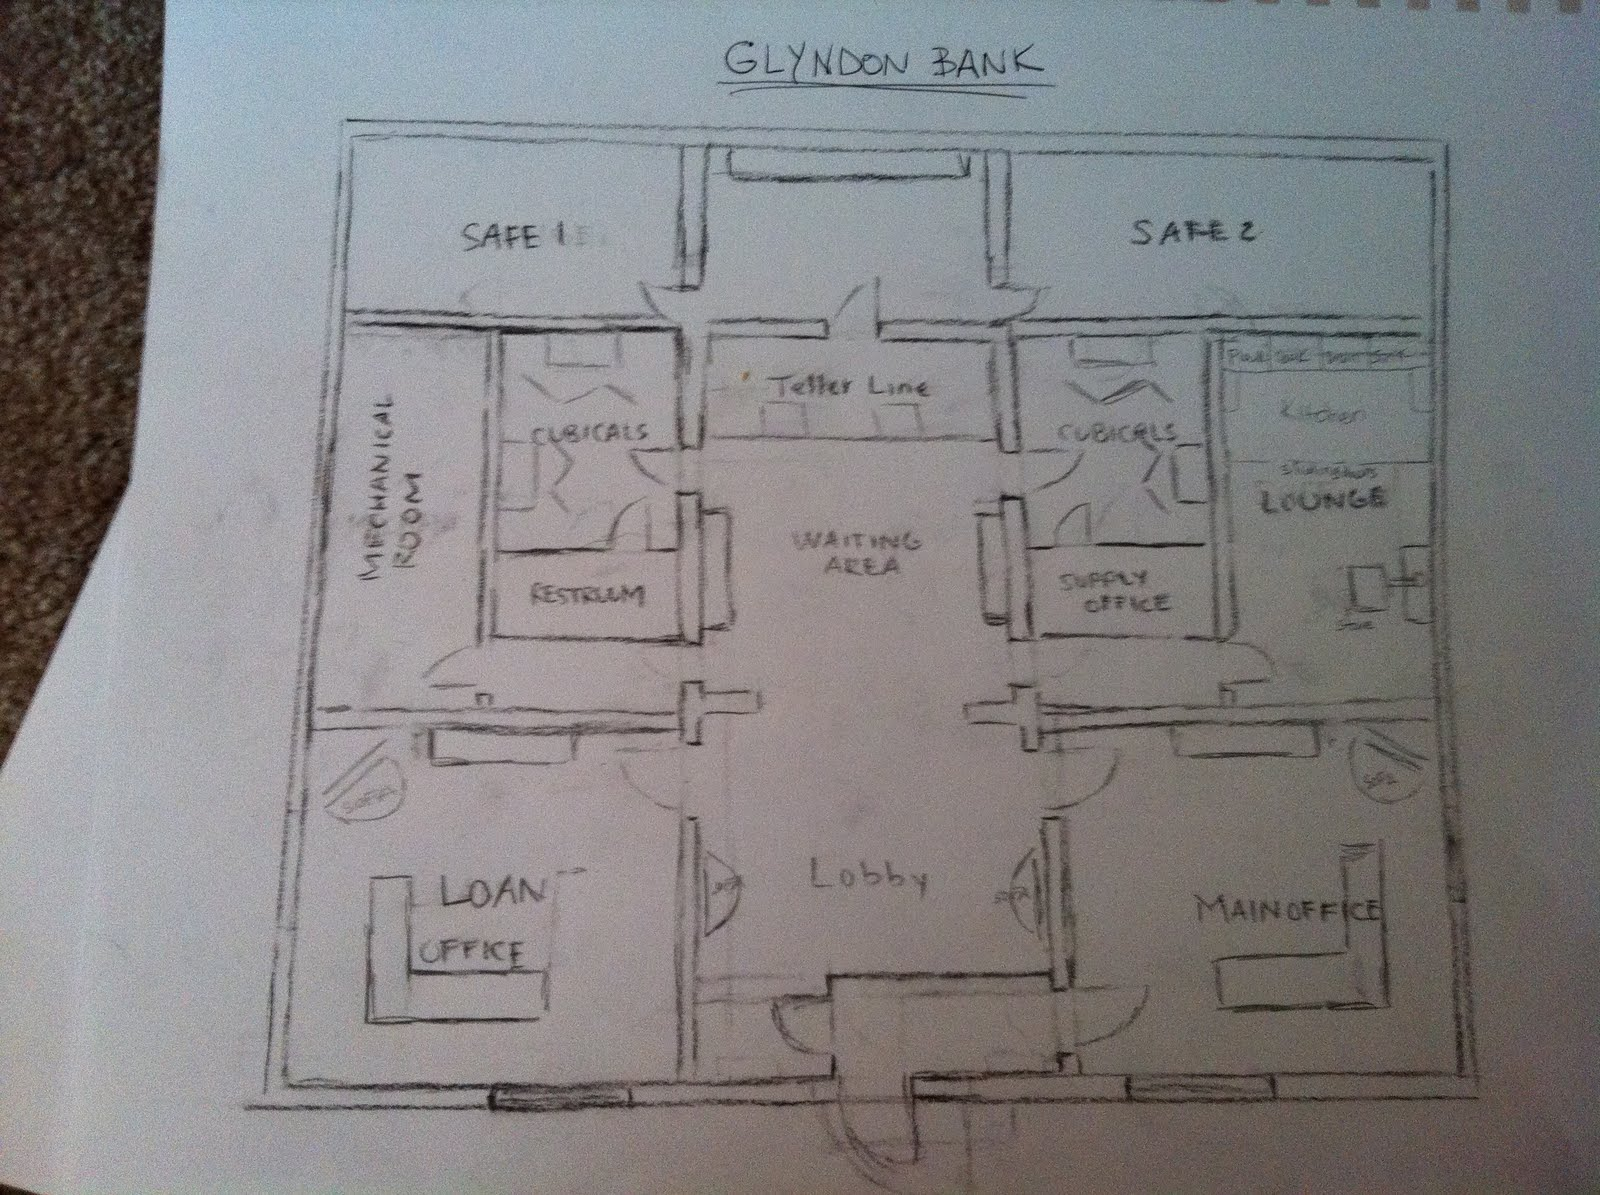 Banks floor plans for Bank designs architecture